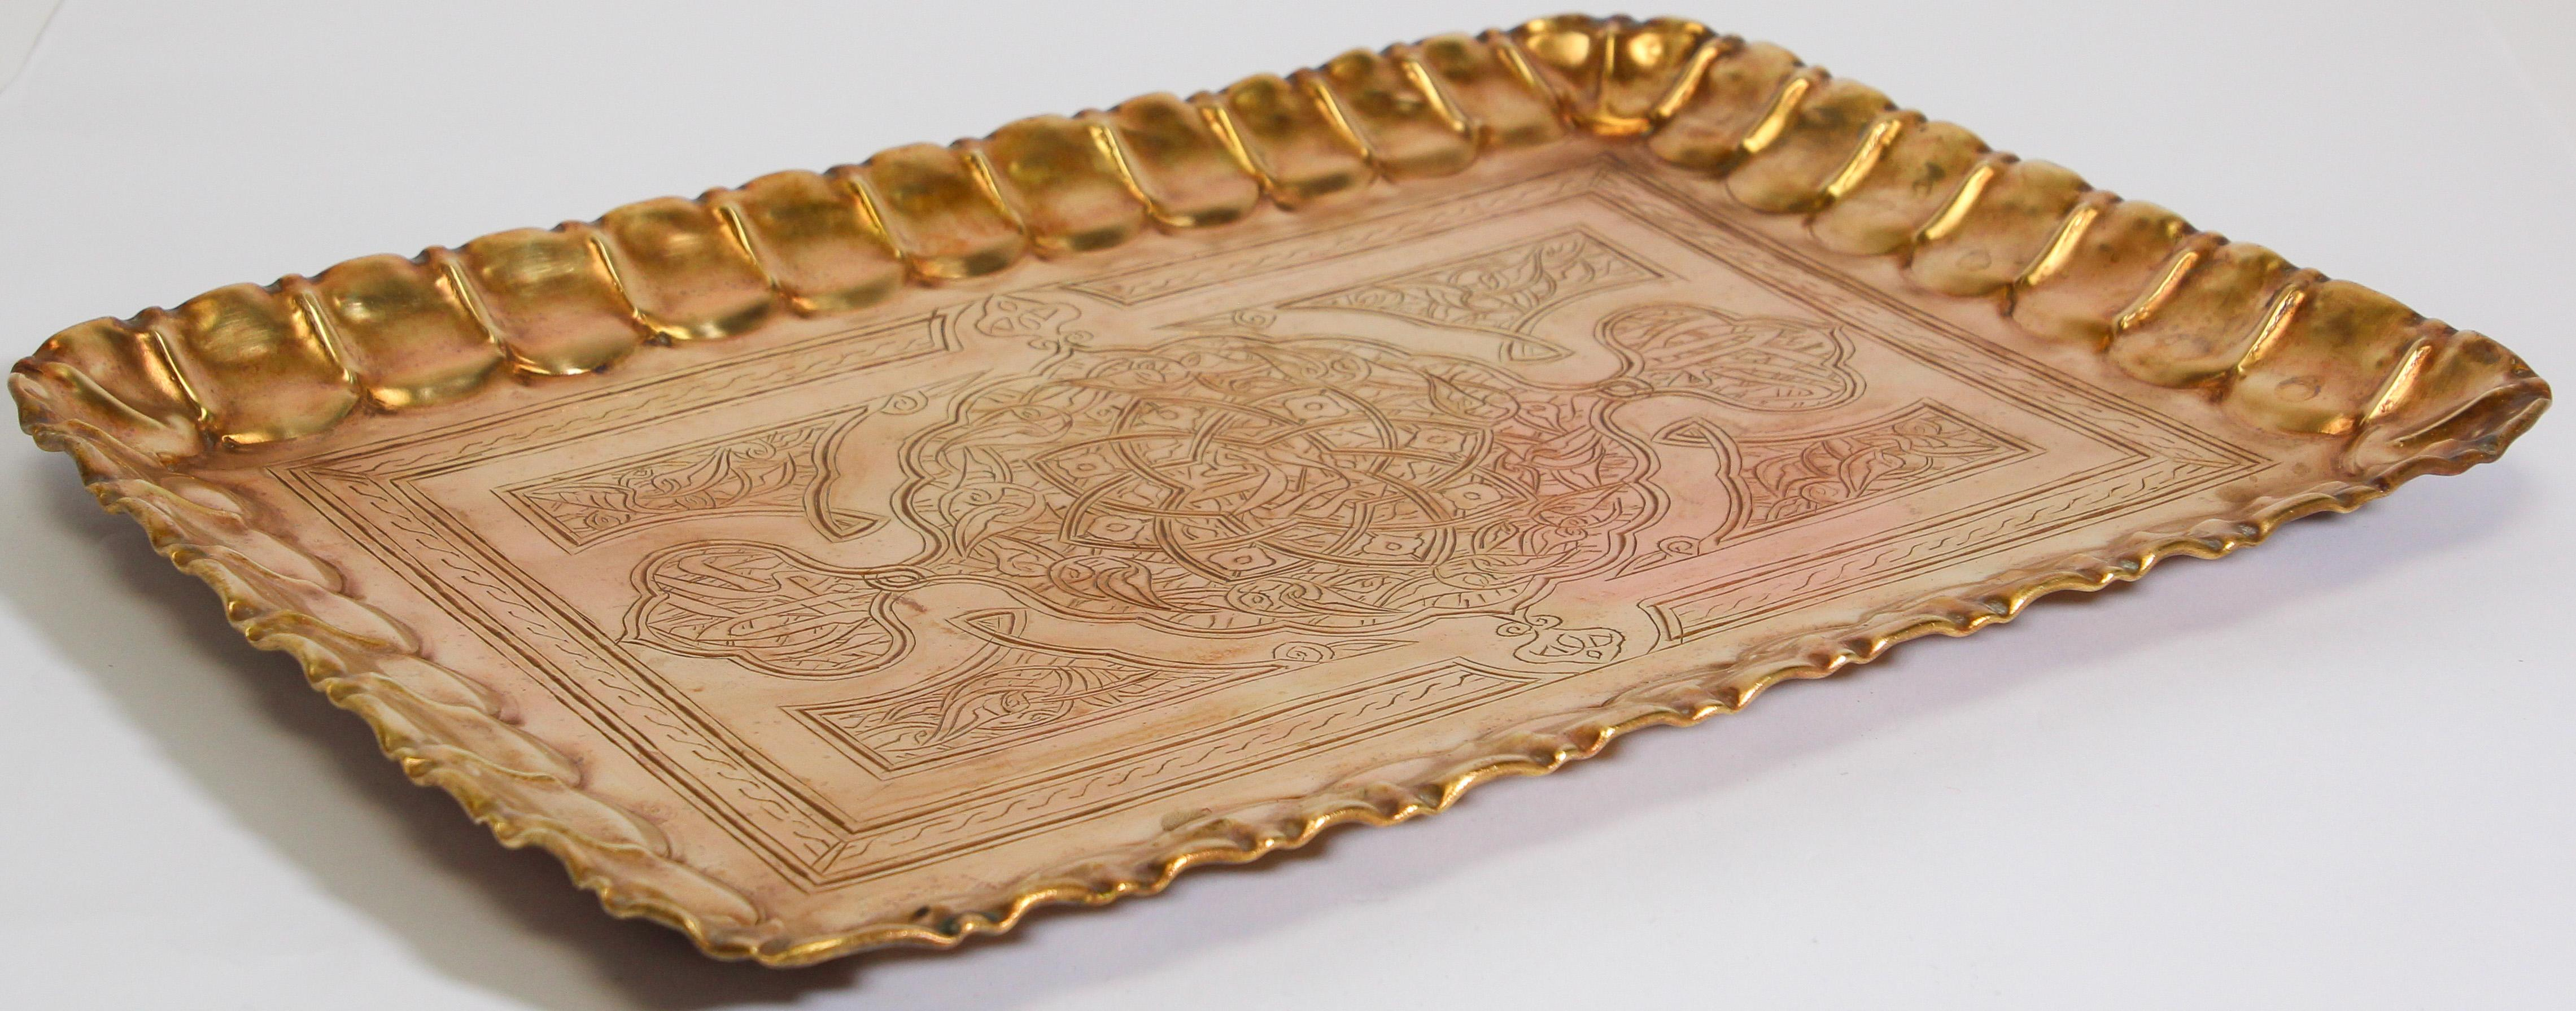 Middle Eastern Syrian Rectangular Brass Tray With Arabic Writing